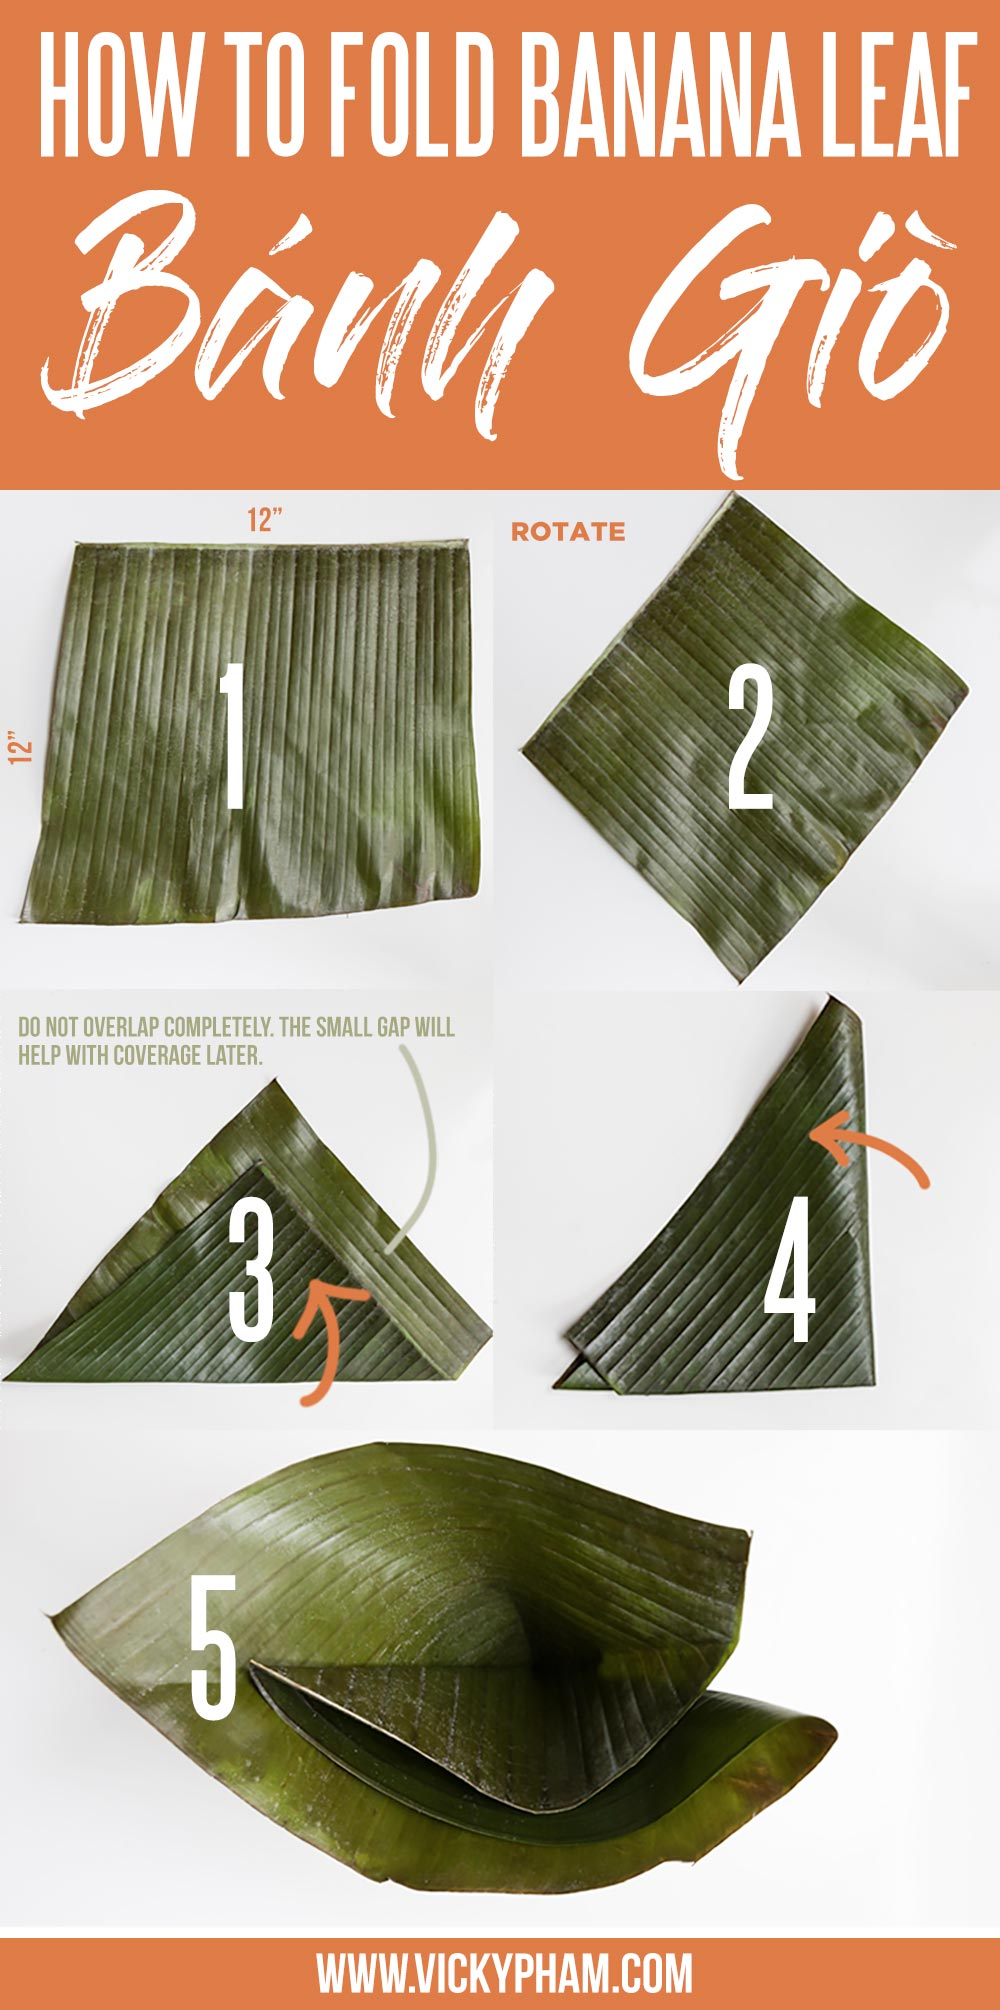 banh-gio-how-to-fold.jpg